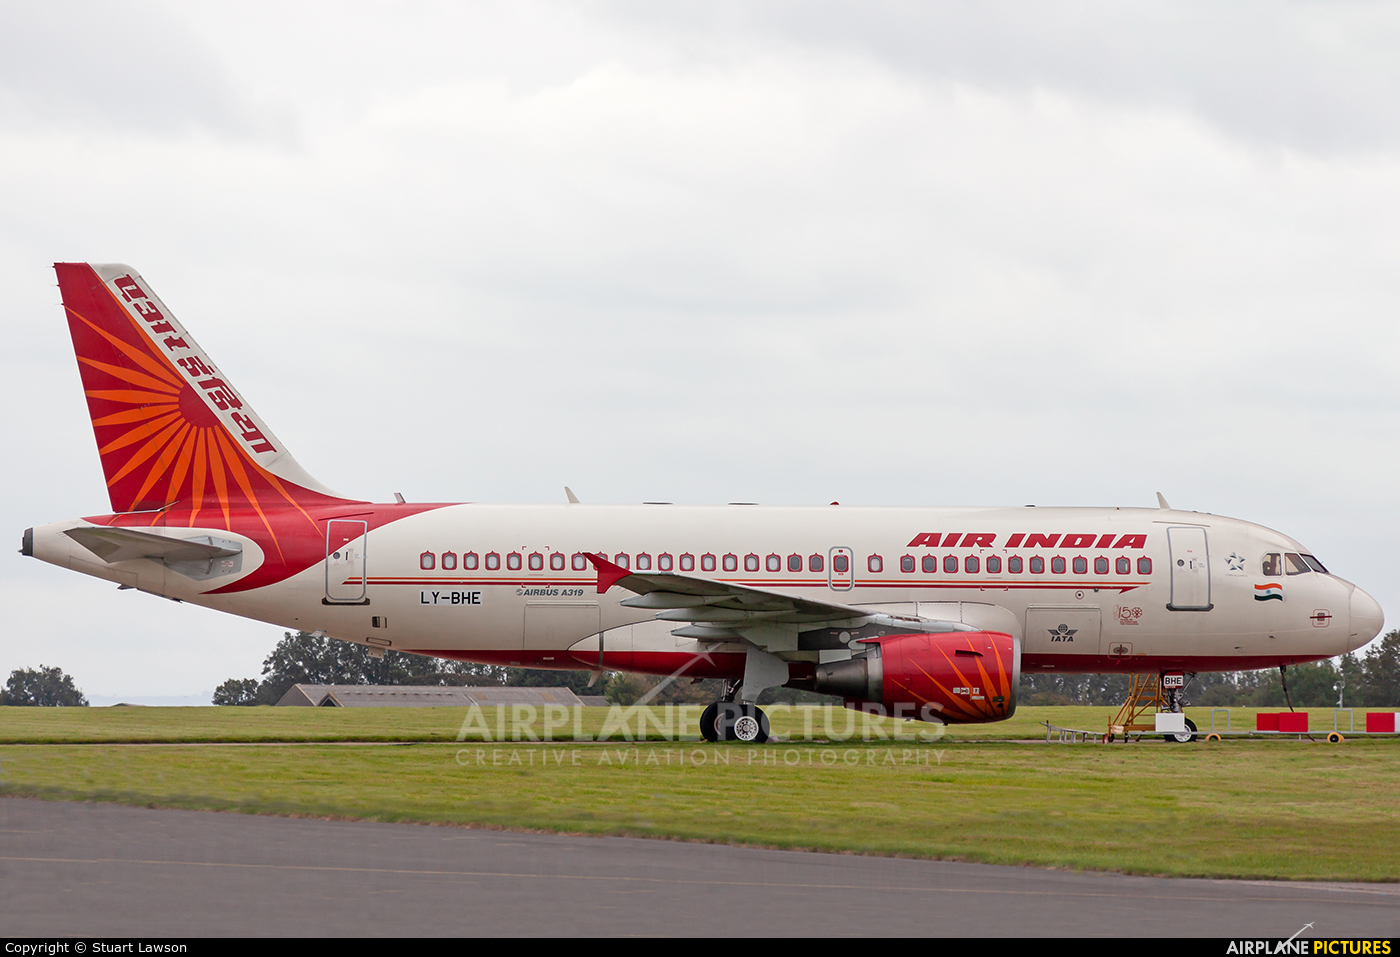 Air India LY-BHE aircraft at St Athan